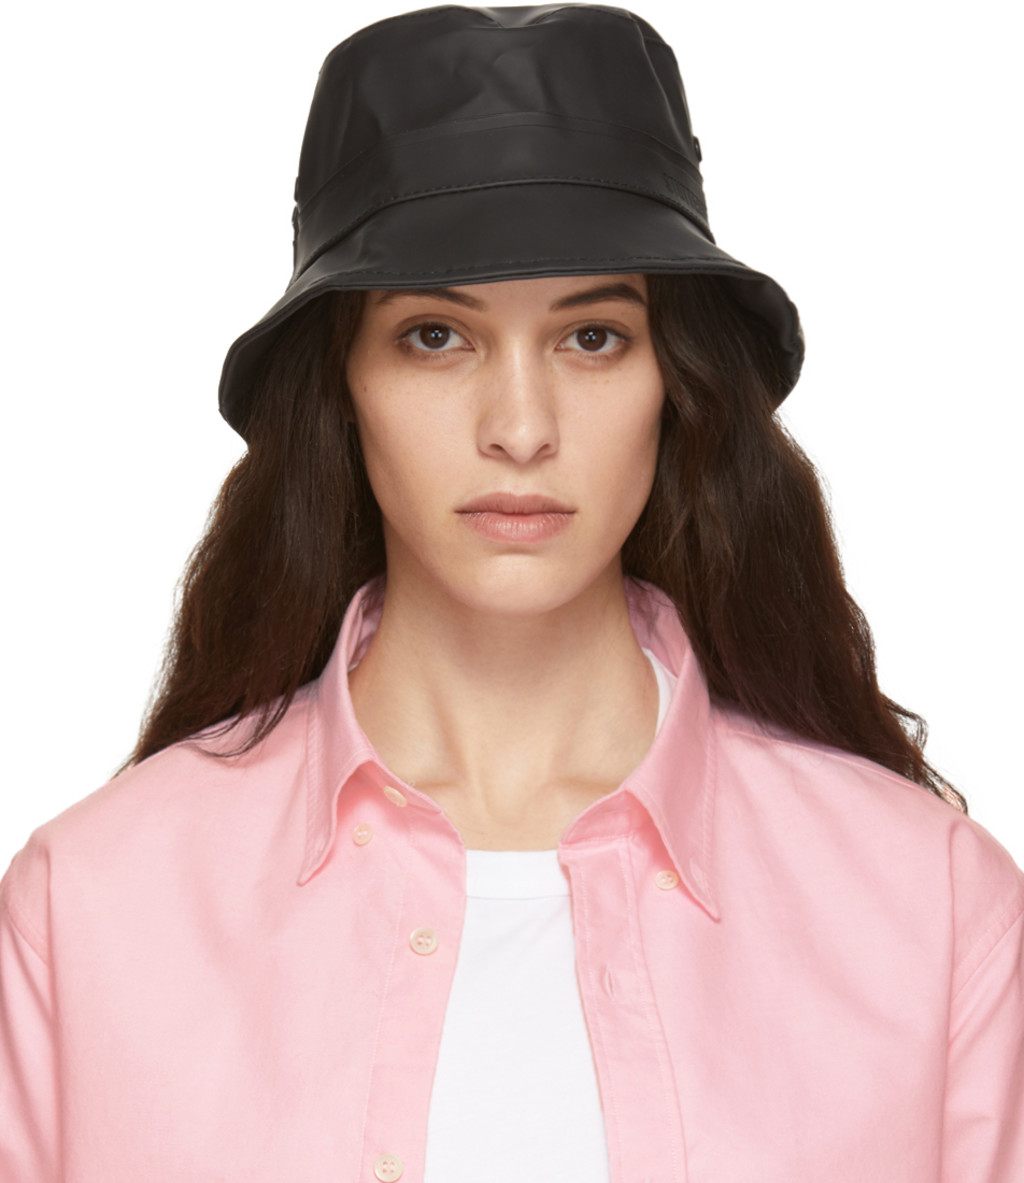 5a9bd5a3593 Designer hats for women ssense jpg 1024x1183 Fancy hats for ladies